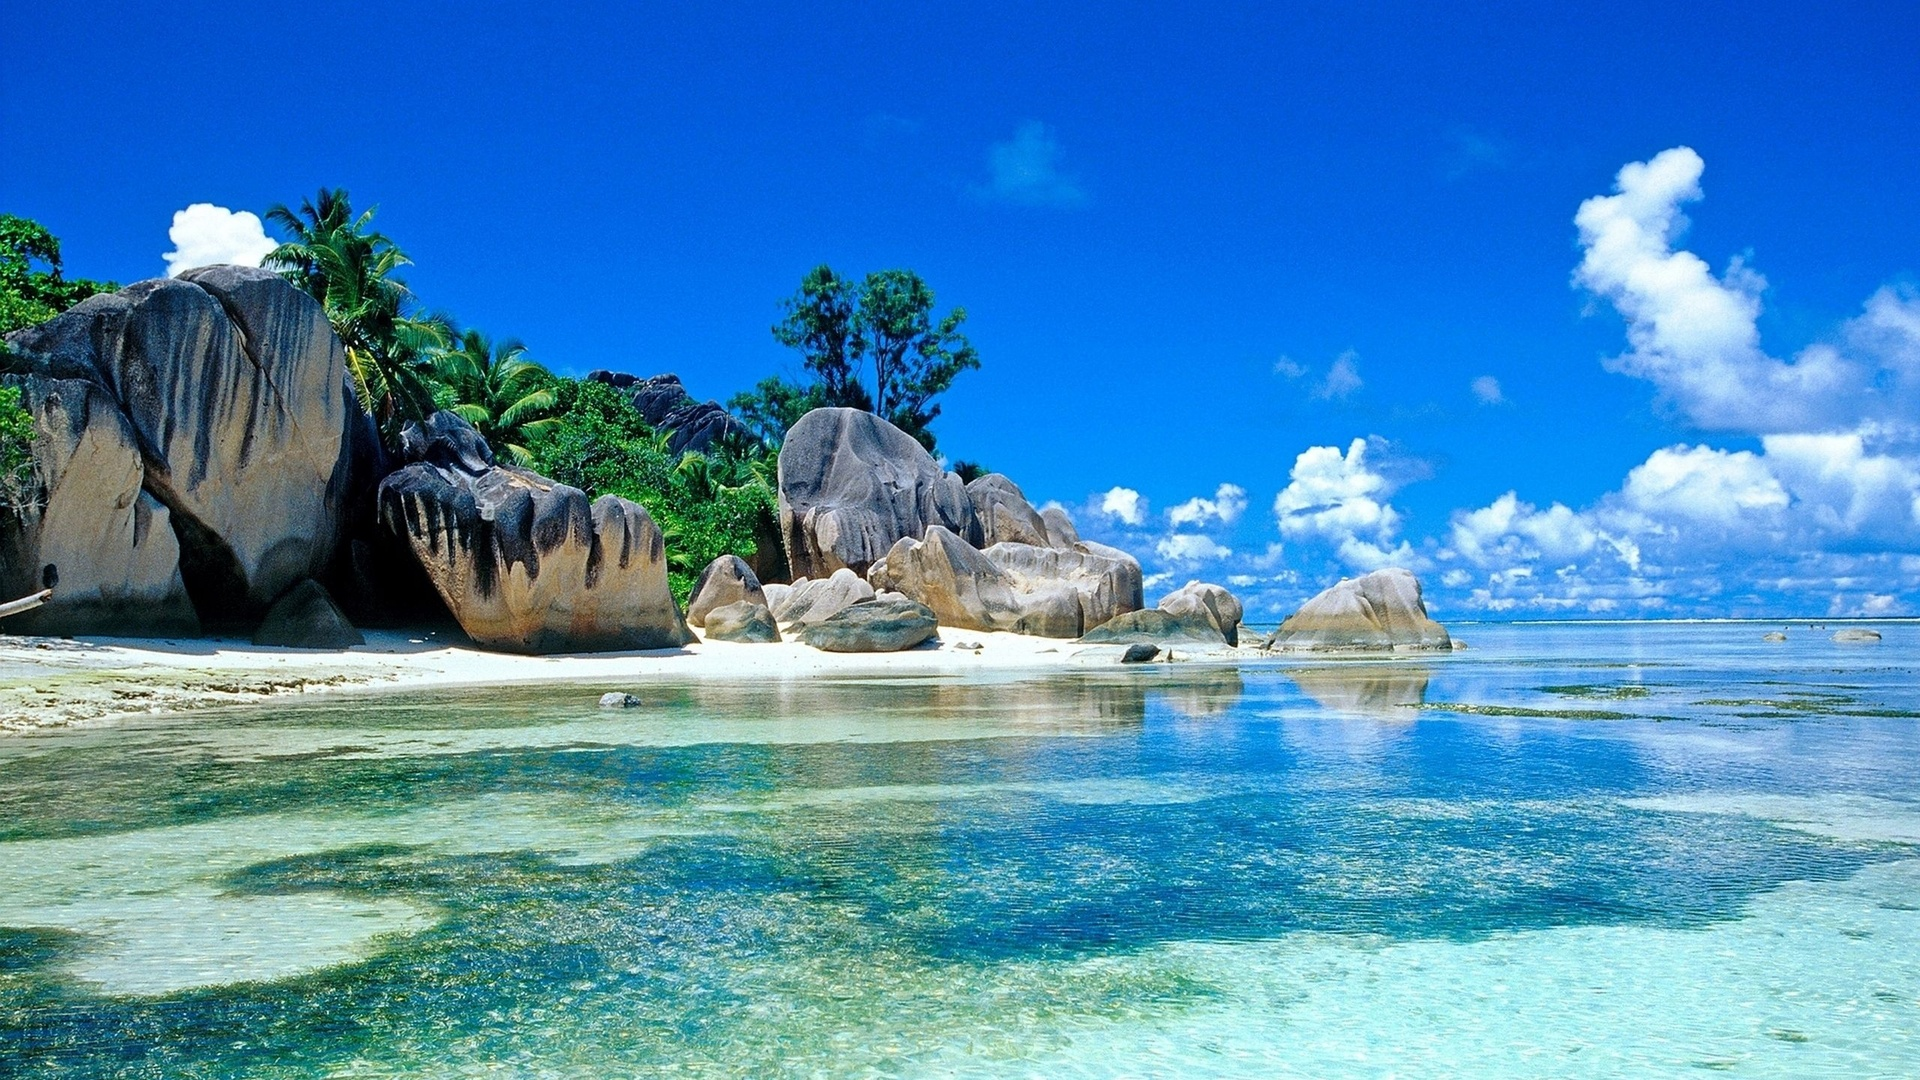 Beautiful tropical beach hd wallpaper 1920x1080 1920x1080